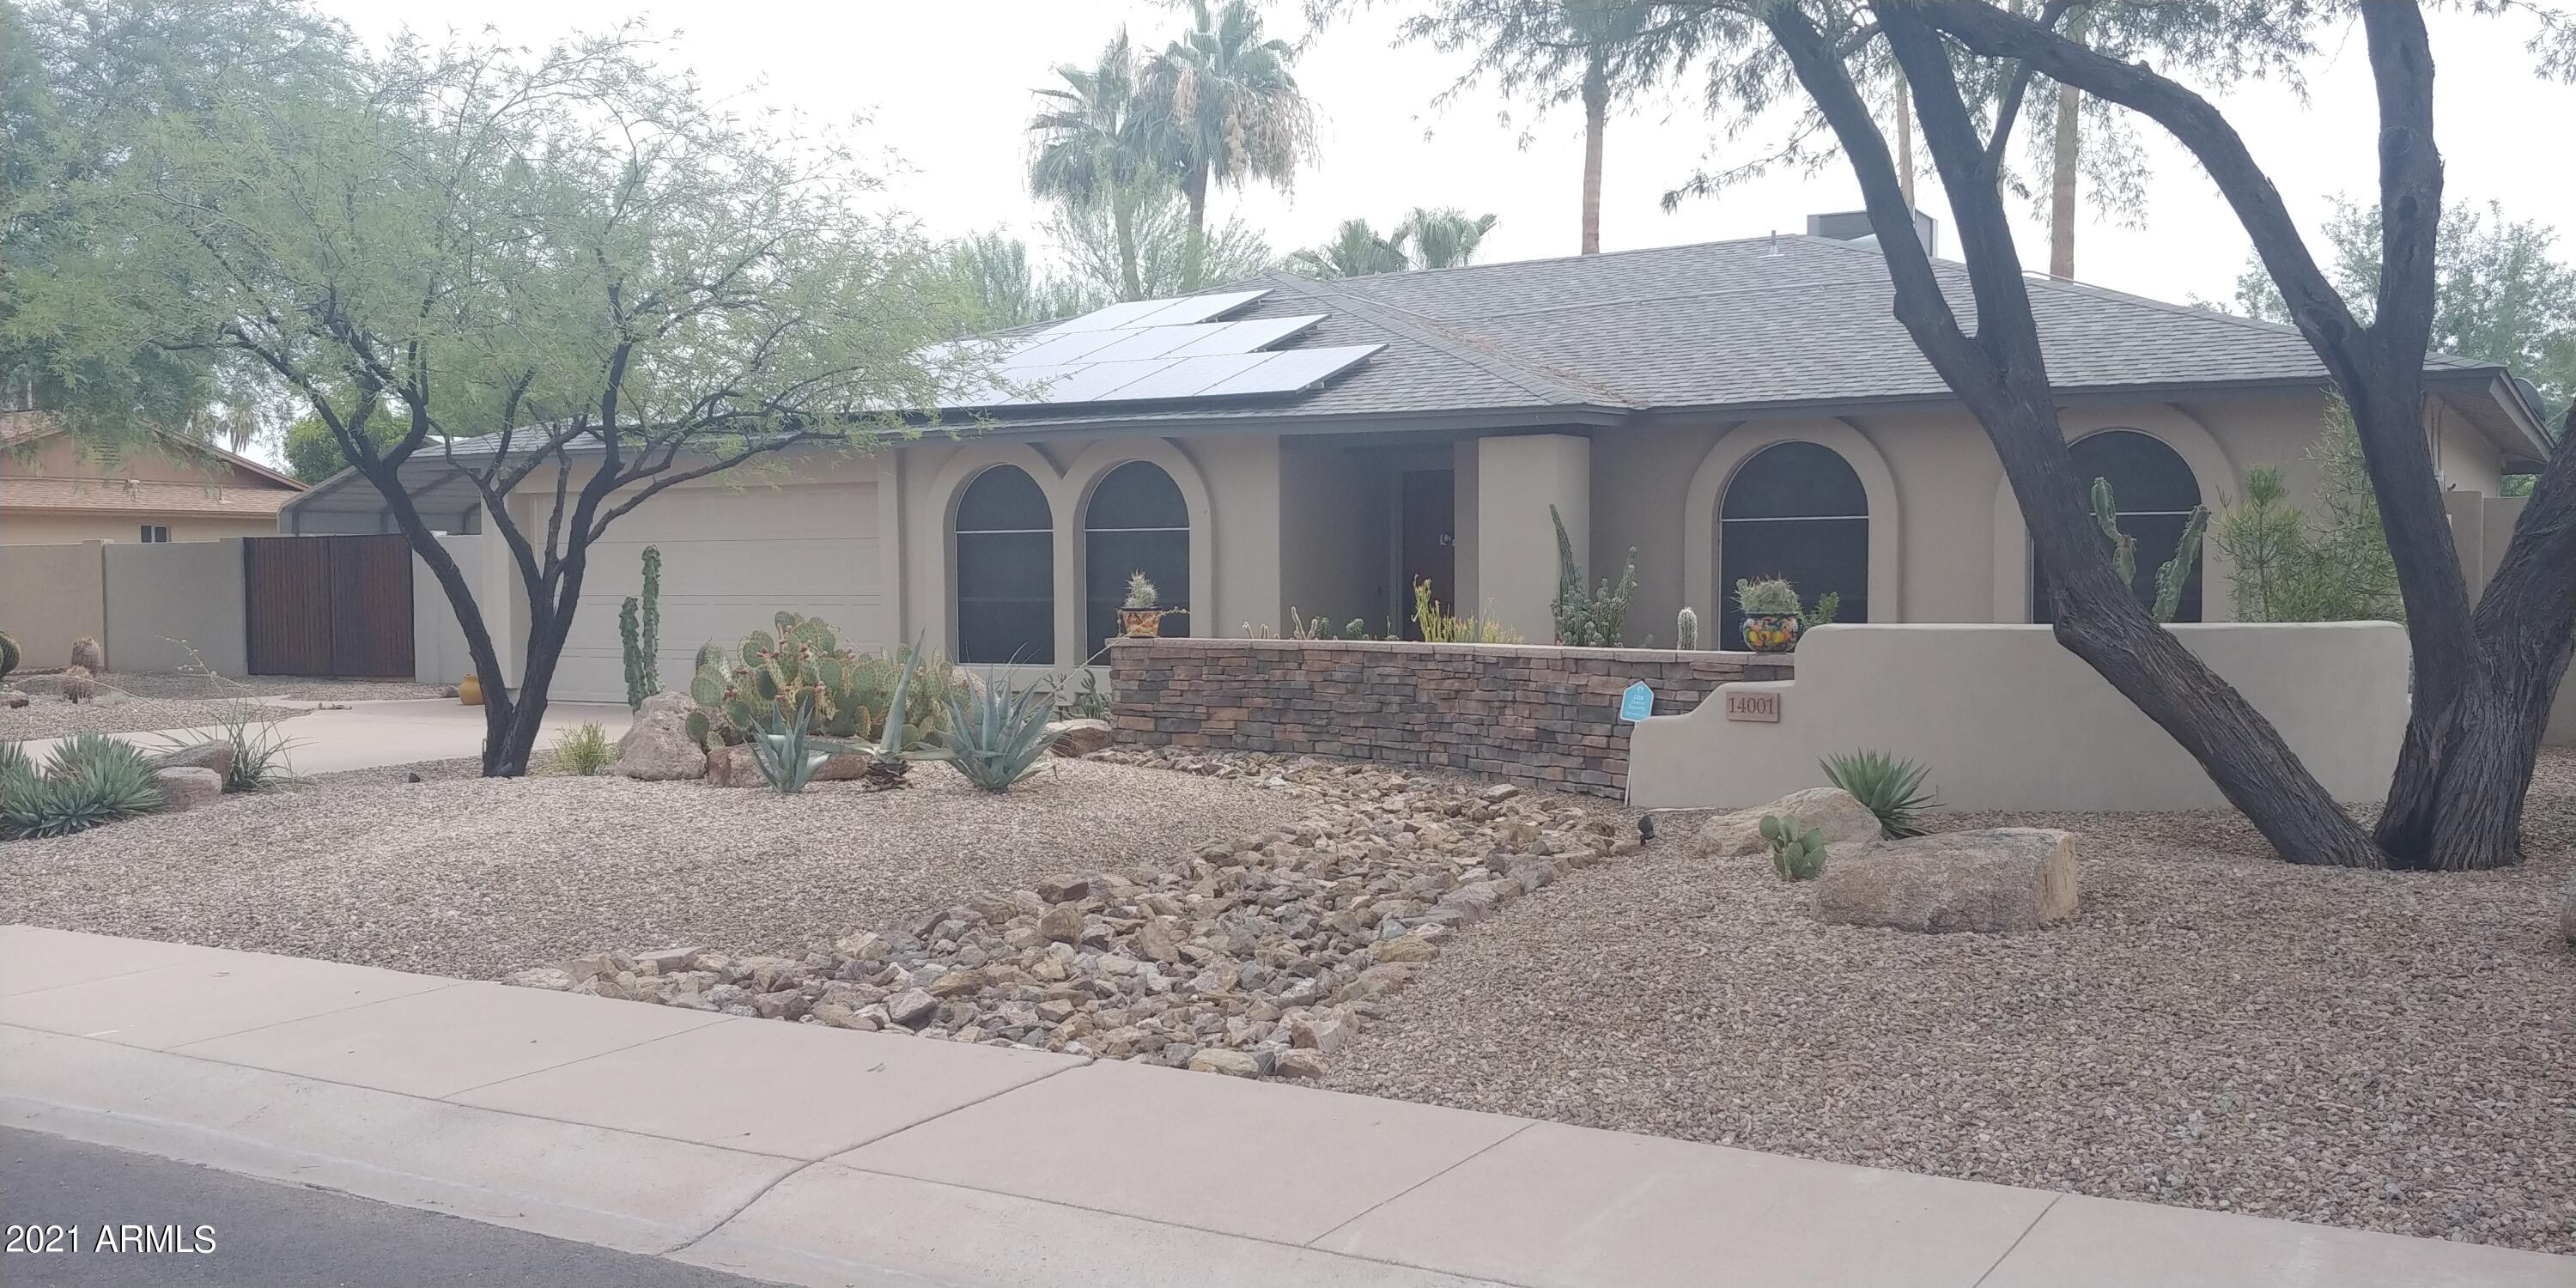 14001 57TH Place, Scottsdale, Arizona 85254, 3 Bedrooms Bedrooms, ,2 BathroomsBathrooms,Residential,For Sale,57TH,6258166